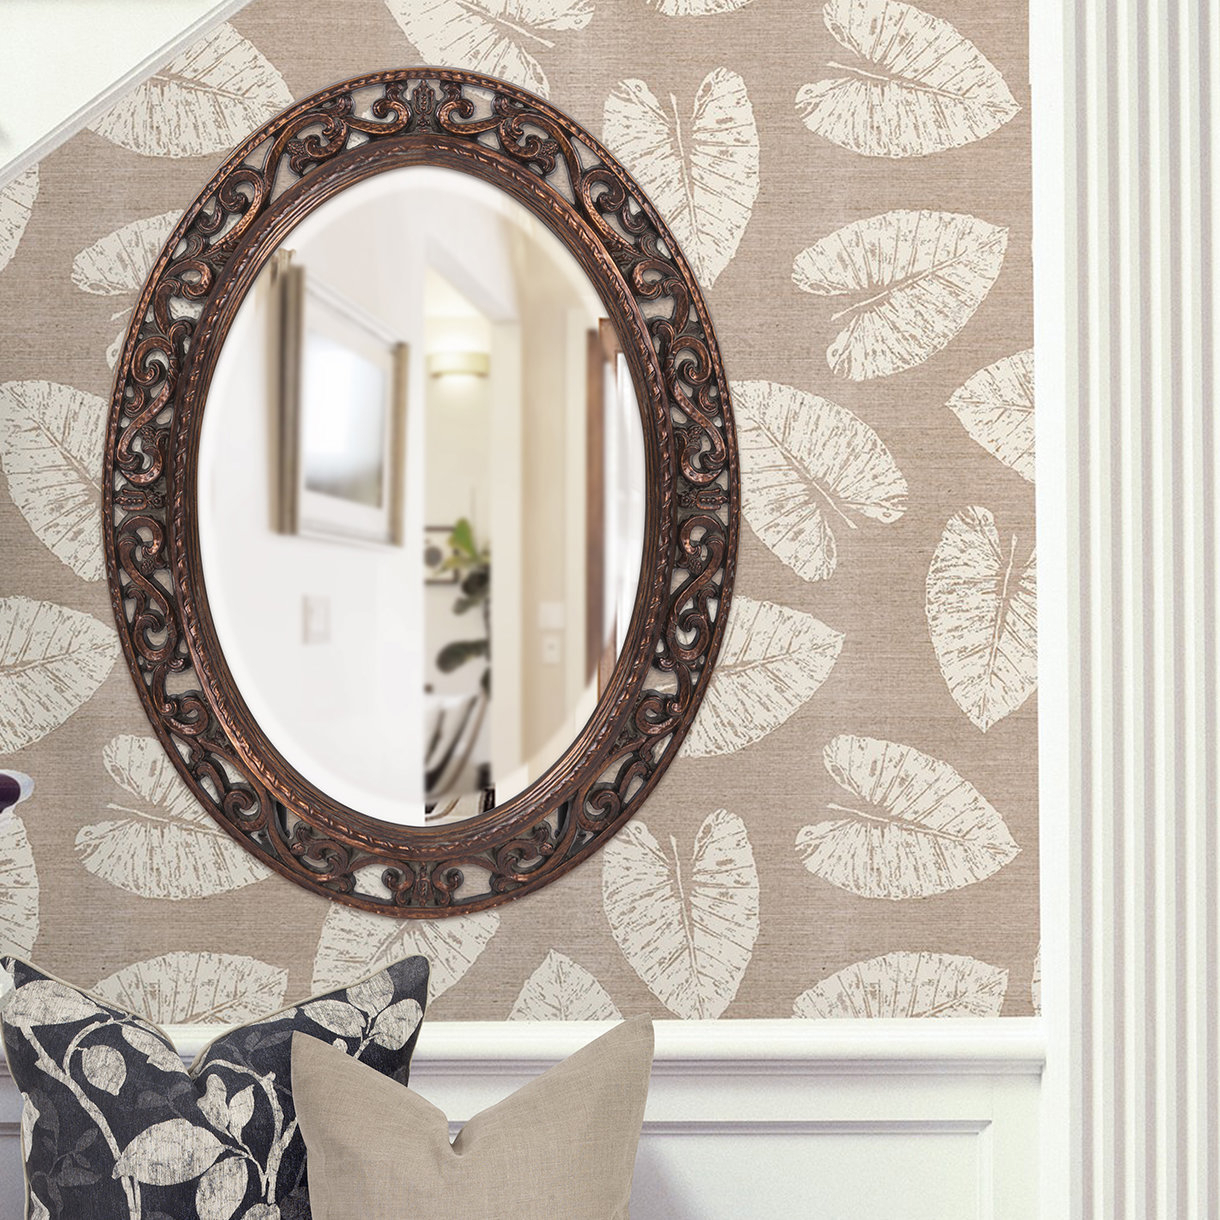 Antique Bronze Accent Mirror | Wayfair In Brynn Accent Mirrors (View 4 of 30)